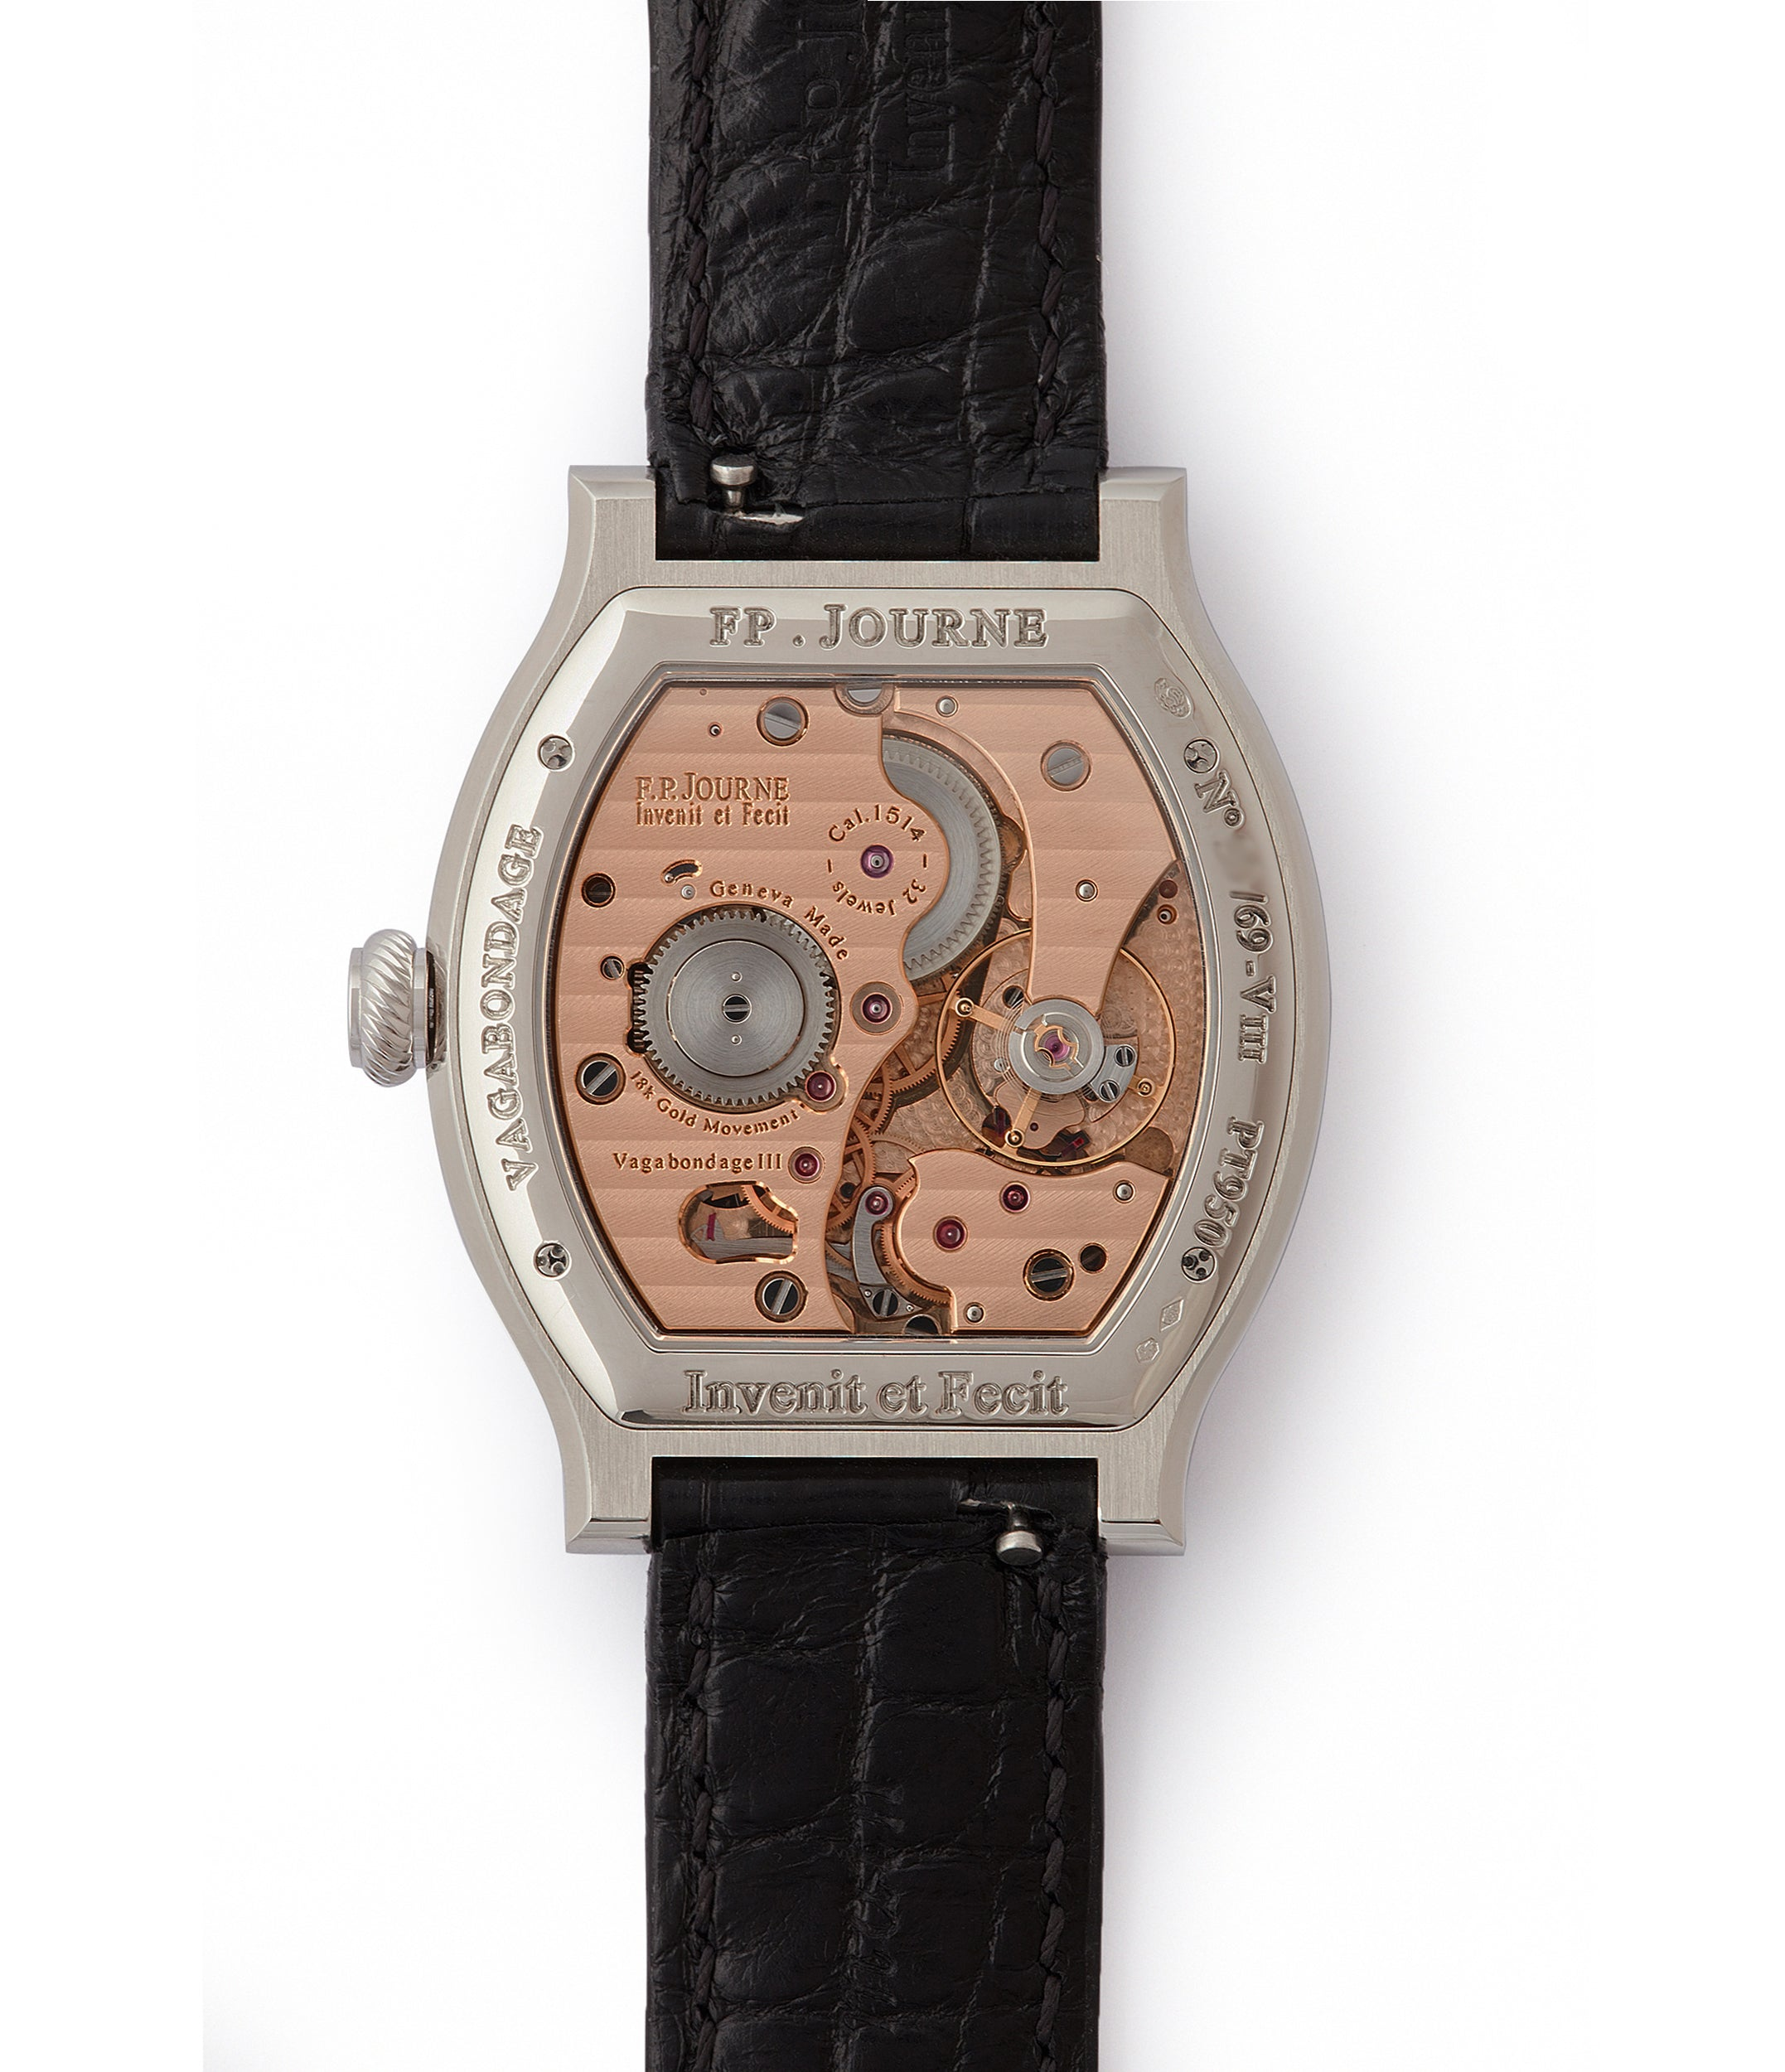 1-minute remontoire F. P. Journe Vagabondage 3 jumping hours seconds Limited edition of 69 platinum rare watch from 2018 for sale online at A Collected Man London UK specialist of independent watchmakers